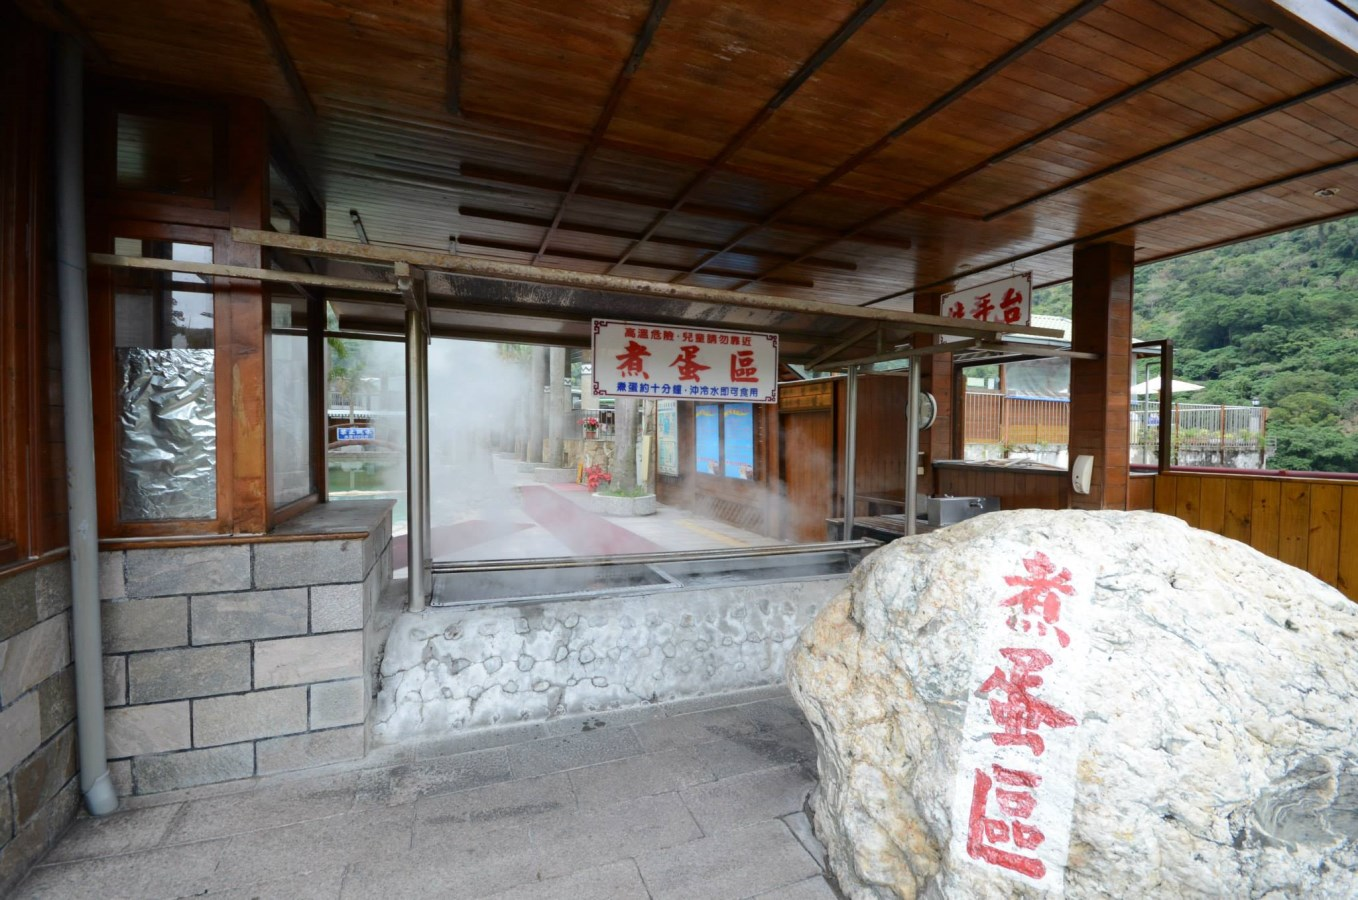 Hot spring facilities